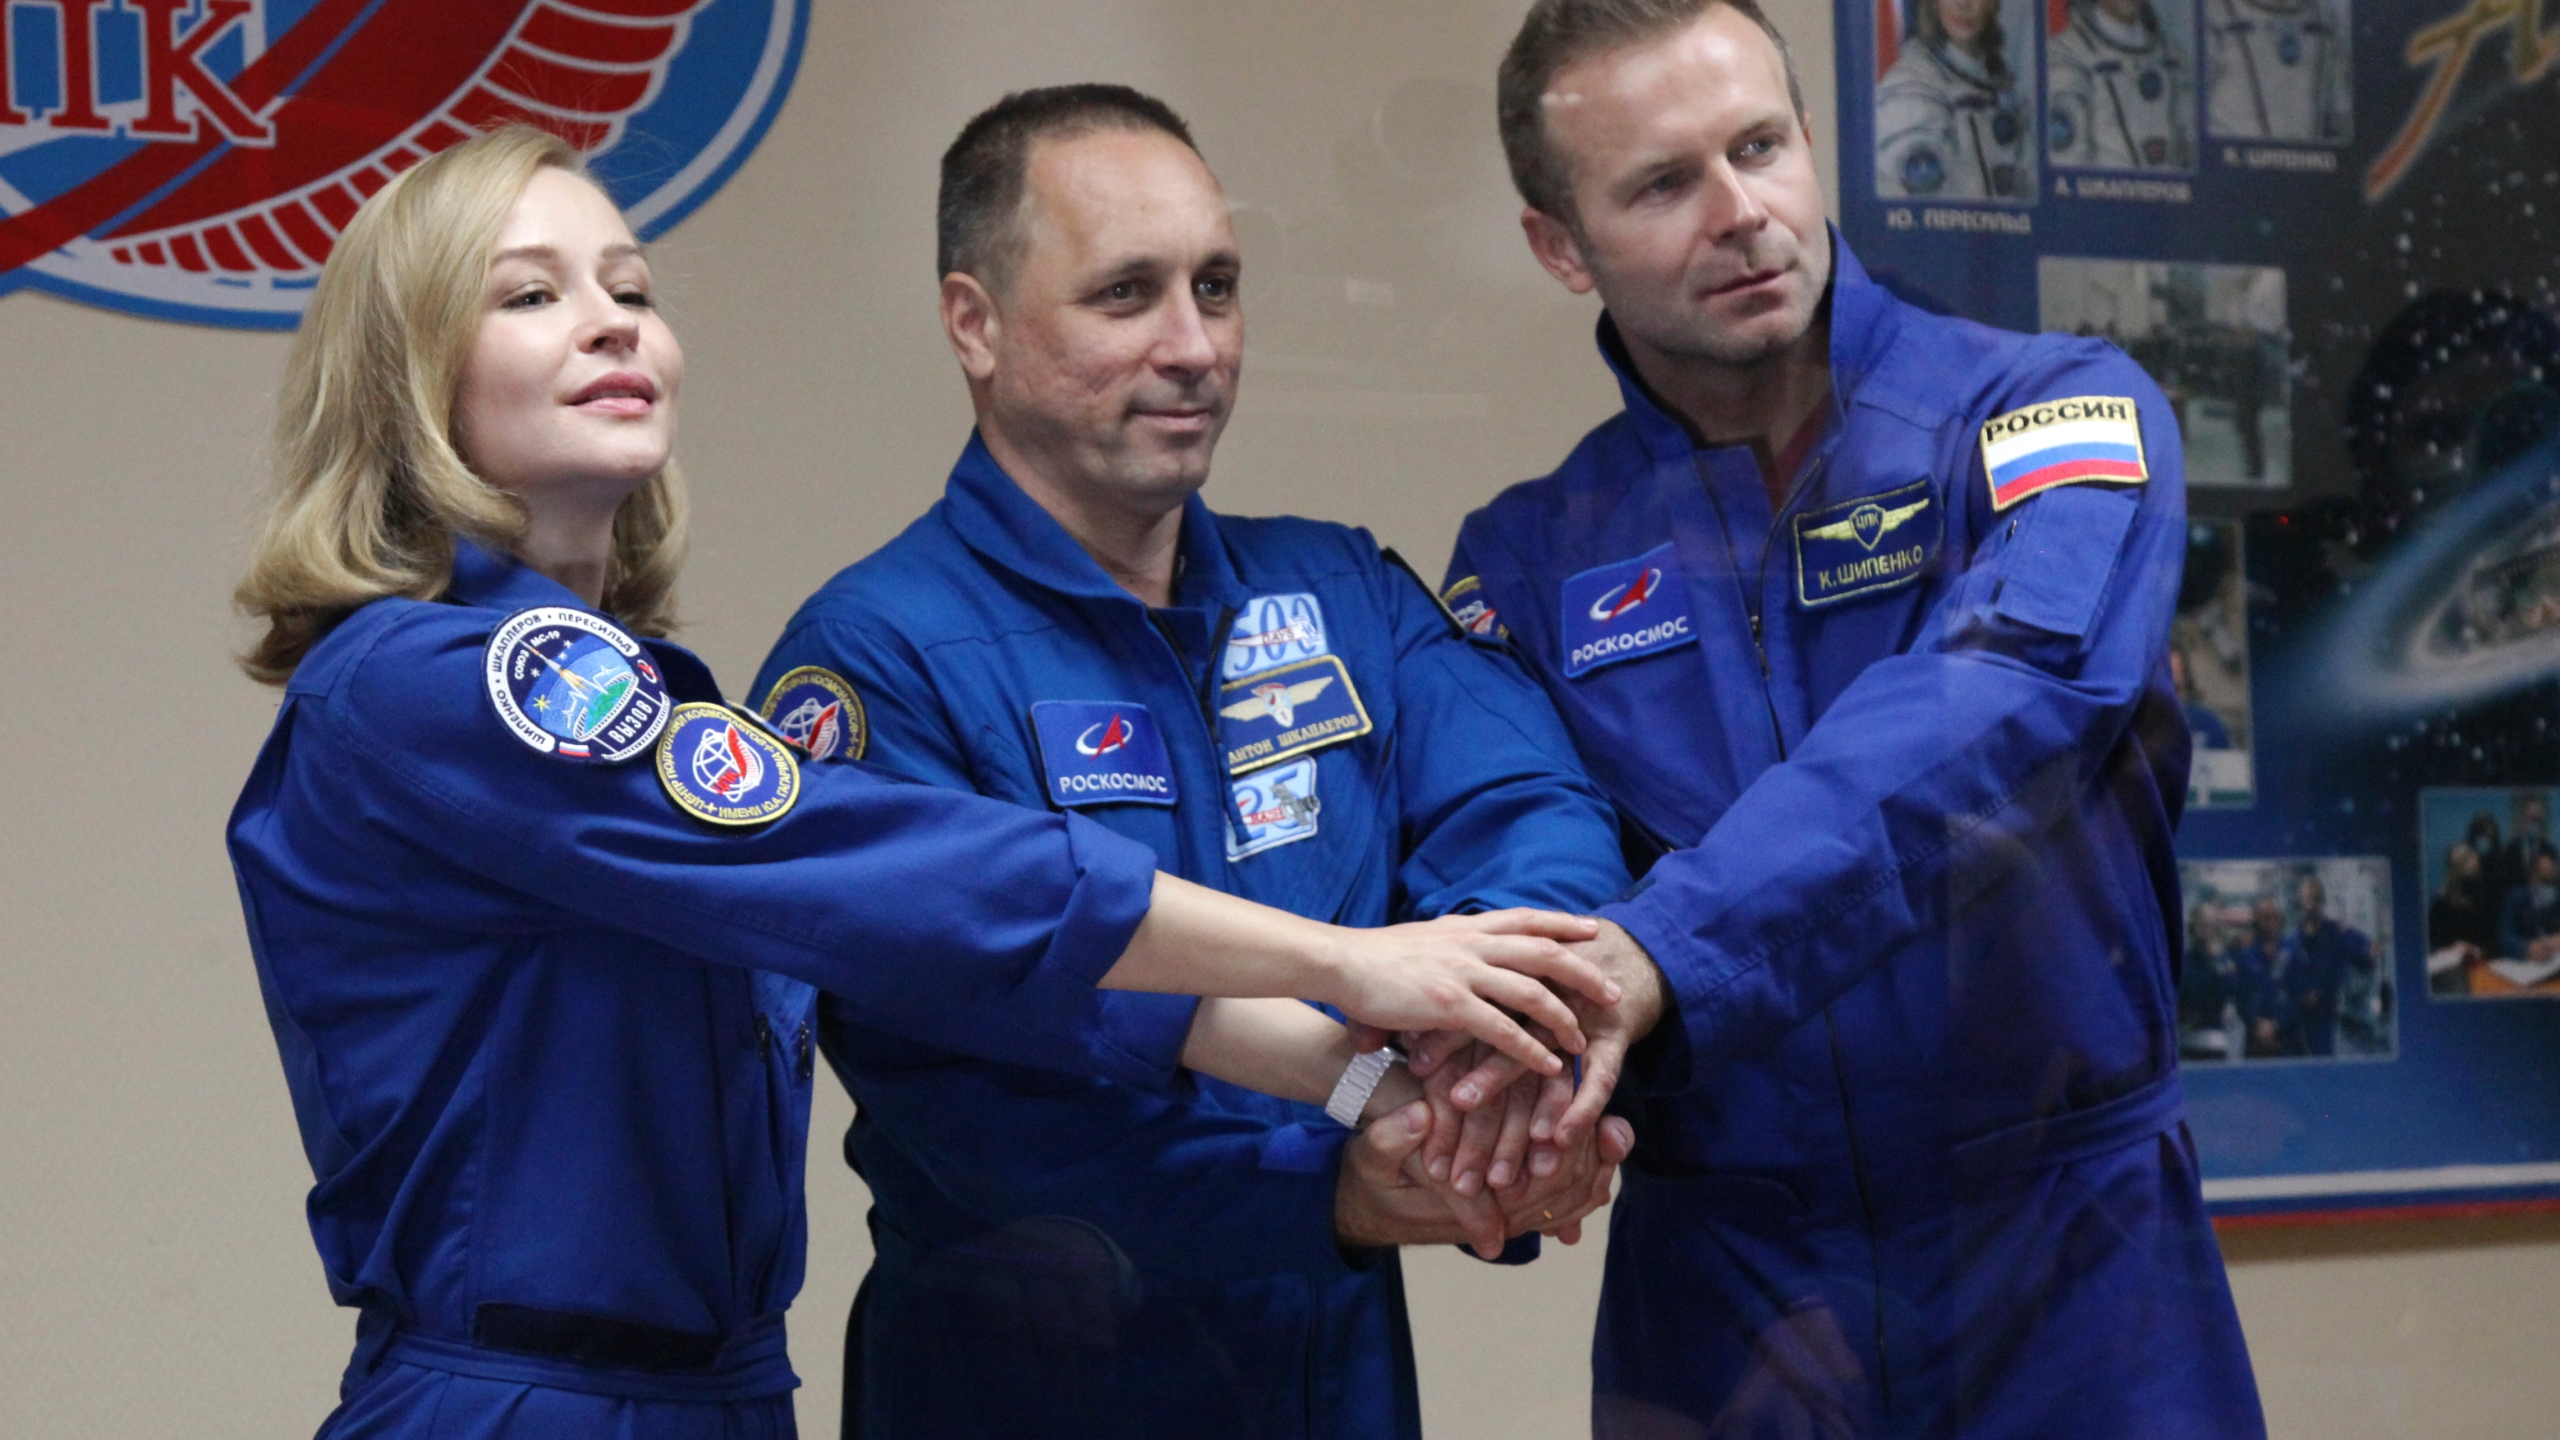 In this handout photo released by Roscosmos, actress Yulia Peresild, left, director Klim Shipenko, right, and cosmonaut Anton Shkaplerov, members of the prime crew of Soyuz MS-19 spaceship pose after a news conference at the Russian launch facility in the Baikonur Cosmodrome, Kazakhstan, Monday, Oct. 4, 2021. In a historic first, Russia is set to launch an actress and a film director to space to make a feature film in orbit. Actress Yulia Peresild and director Klim Shipenko are set to blast off Tuesday for the International Space Station in a Russian Soyuz spacecraft together with Anton Shkaplerov, a veteran of three space missions.(Roscosmos Space Agency via AP)